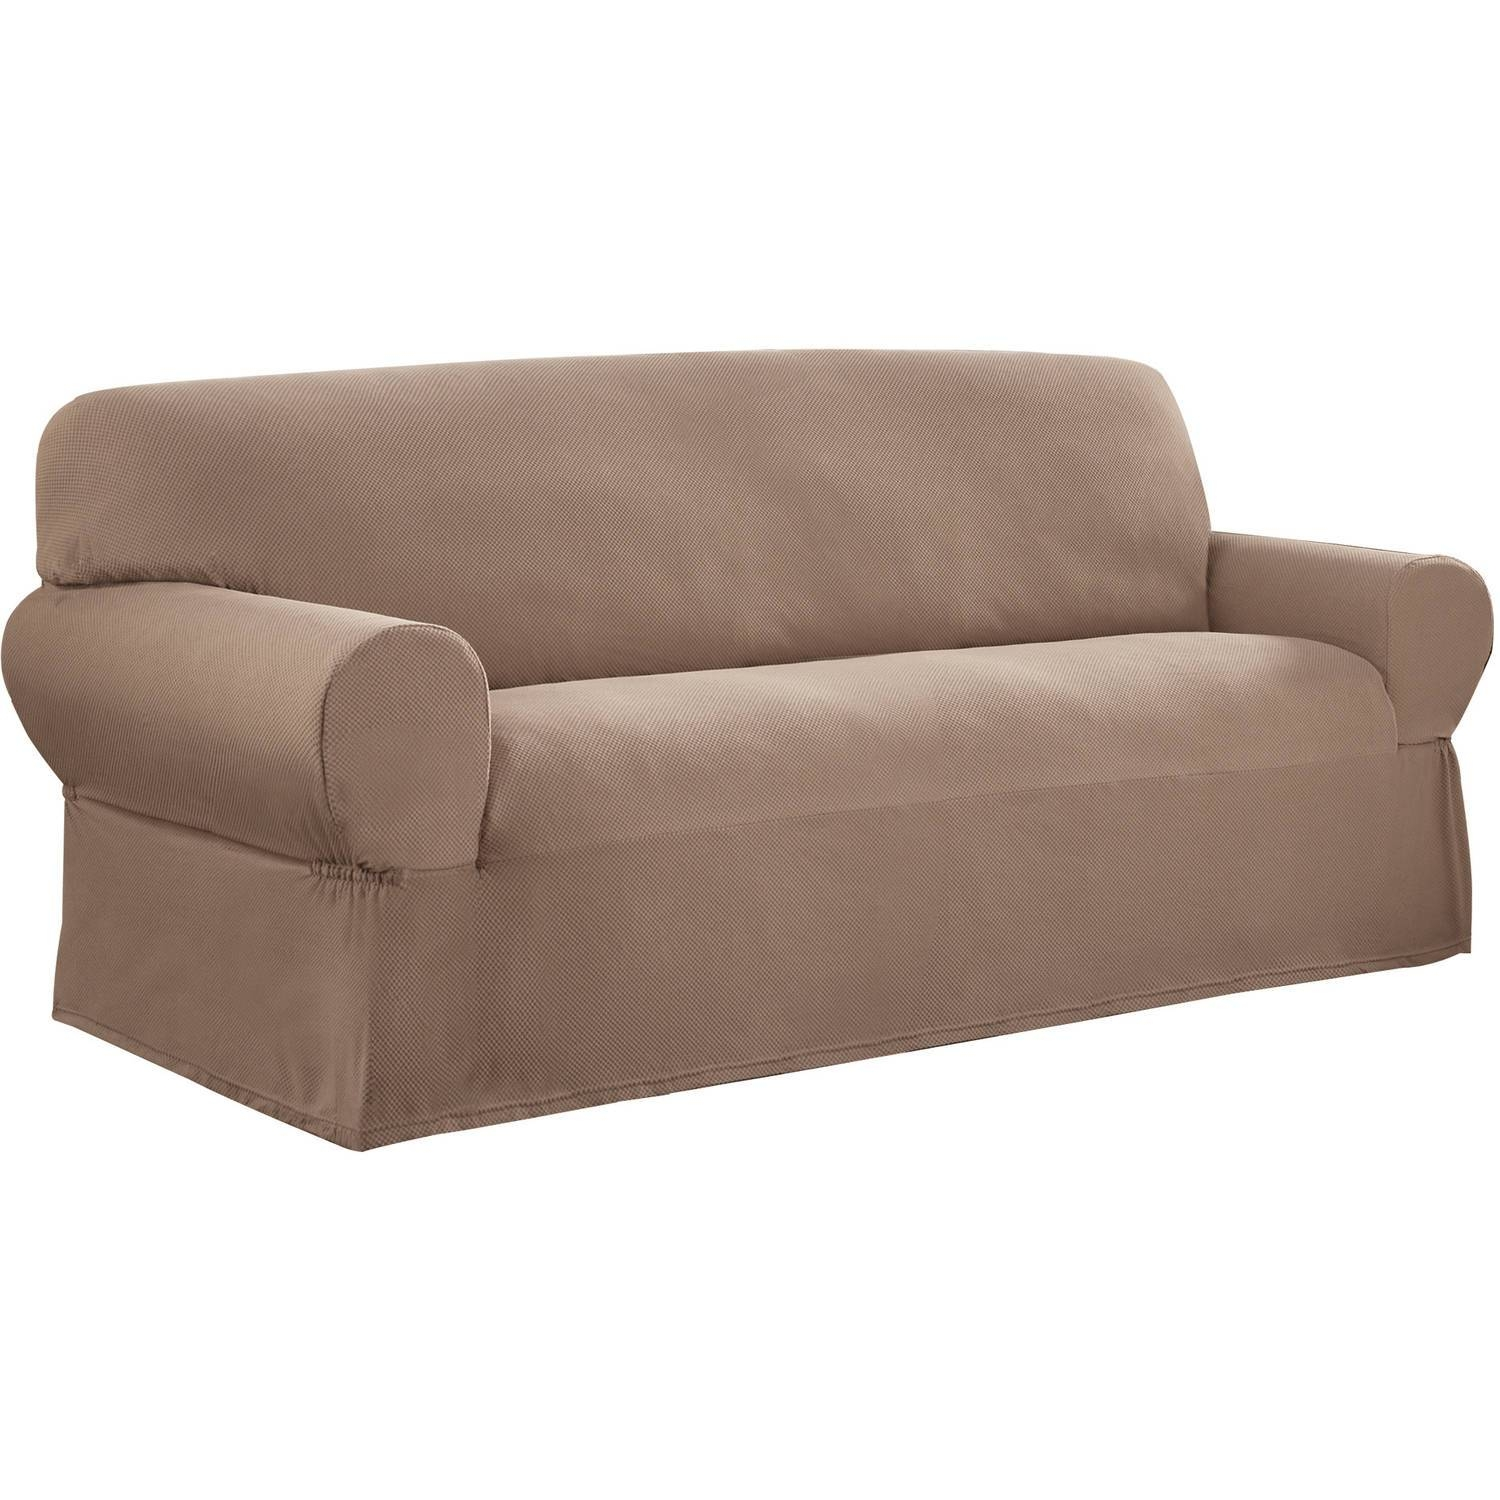 Slipcovers – Walmart In Sofa Armchair Covers (View 28 of 30)